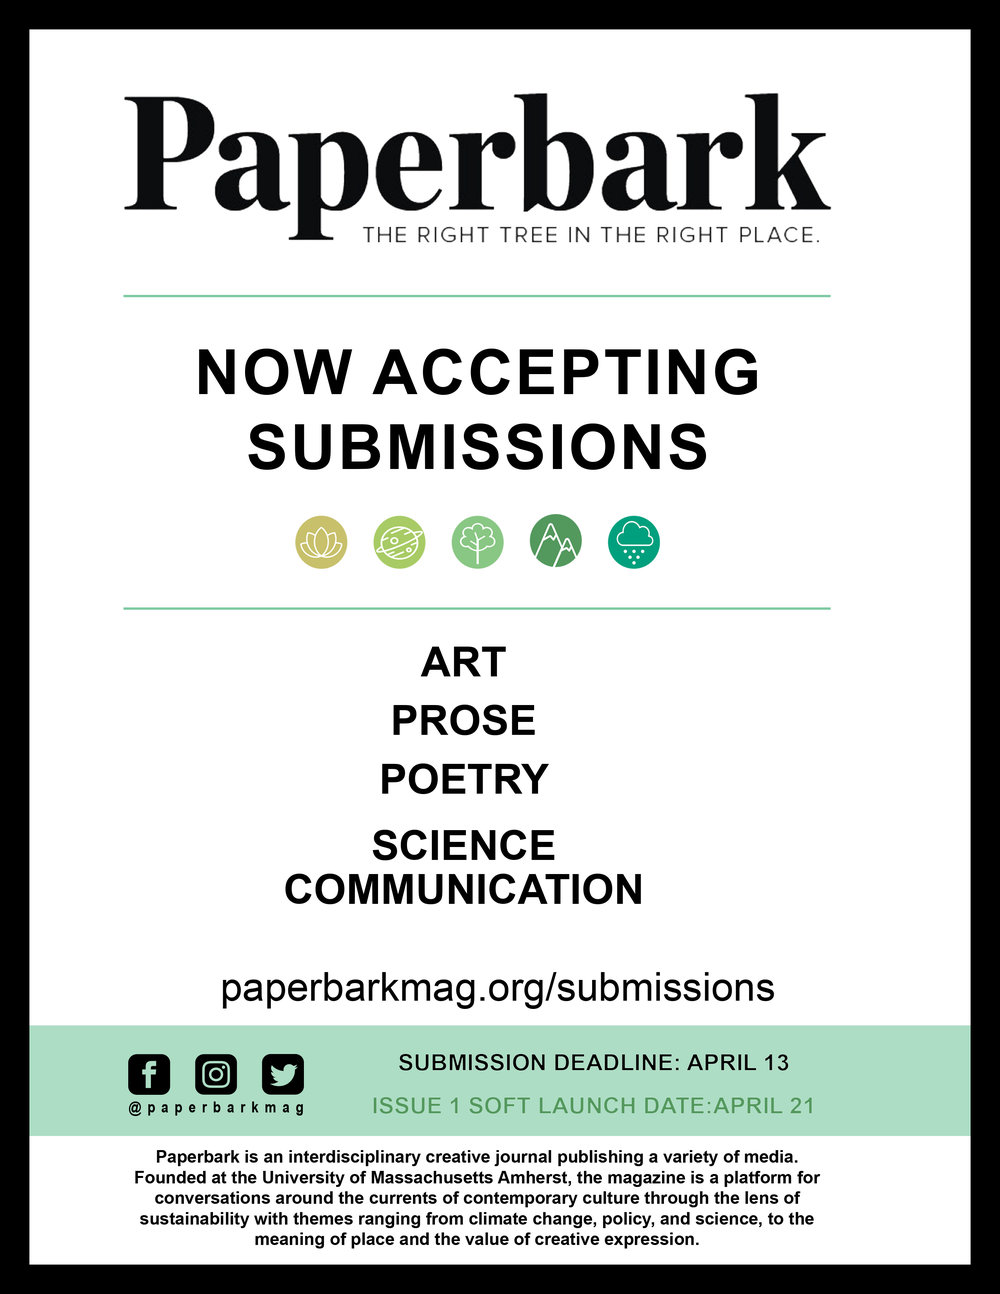 Paperbark_Submission_Poster.jpg